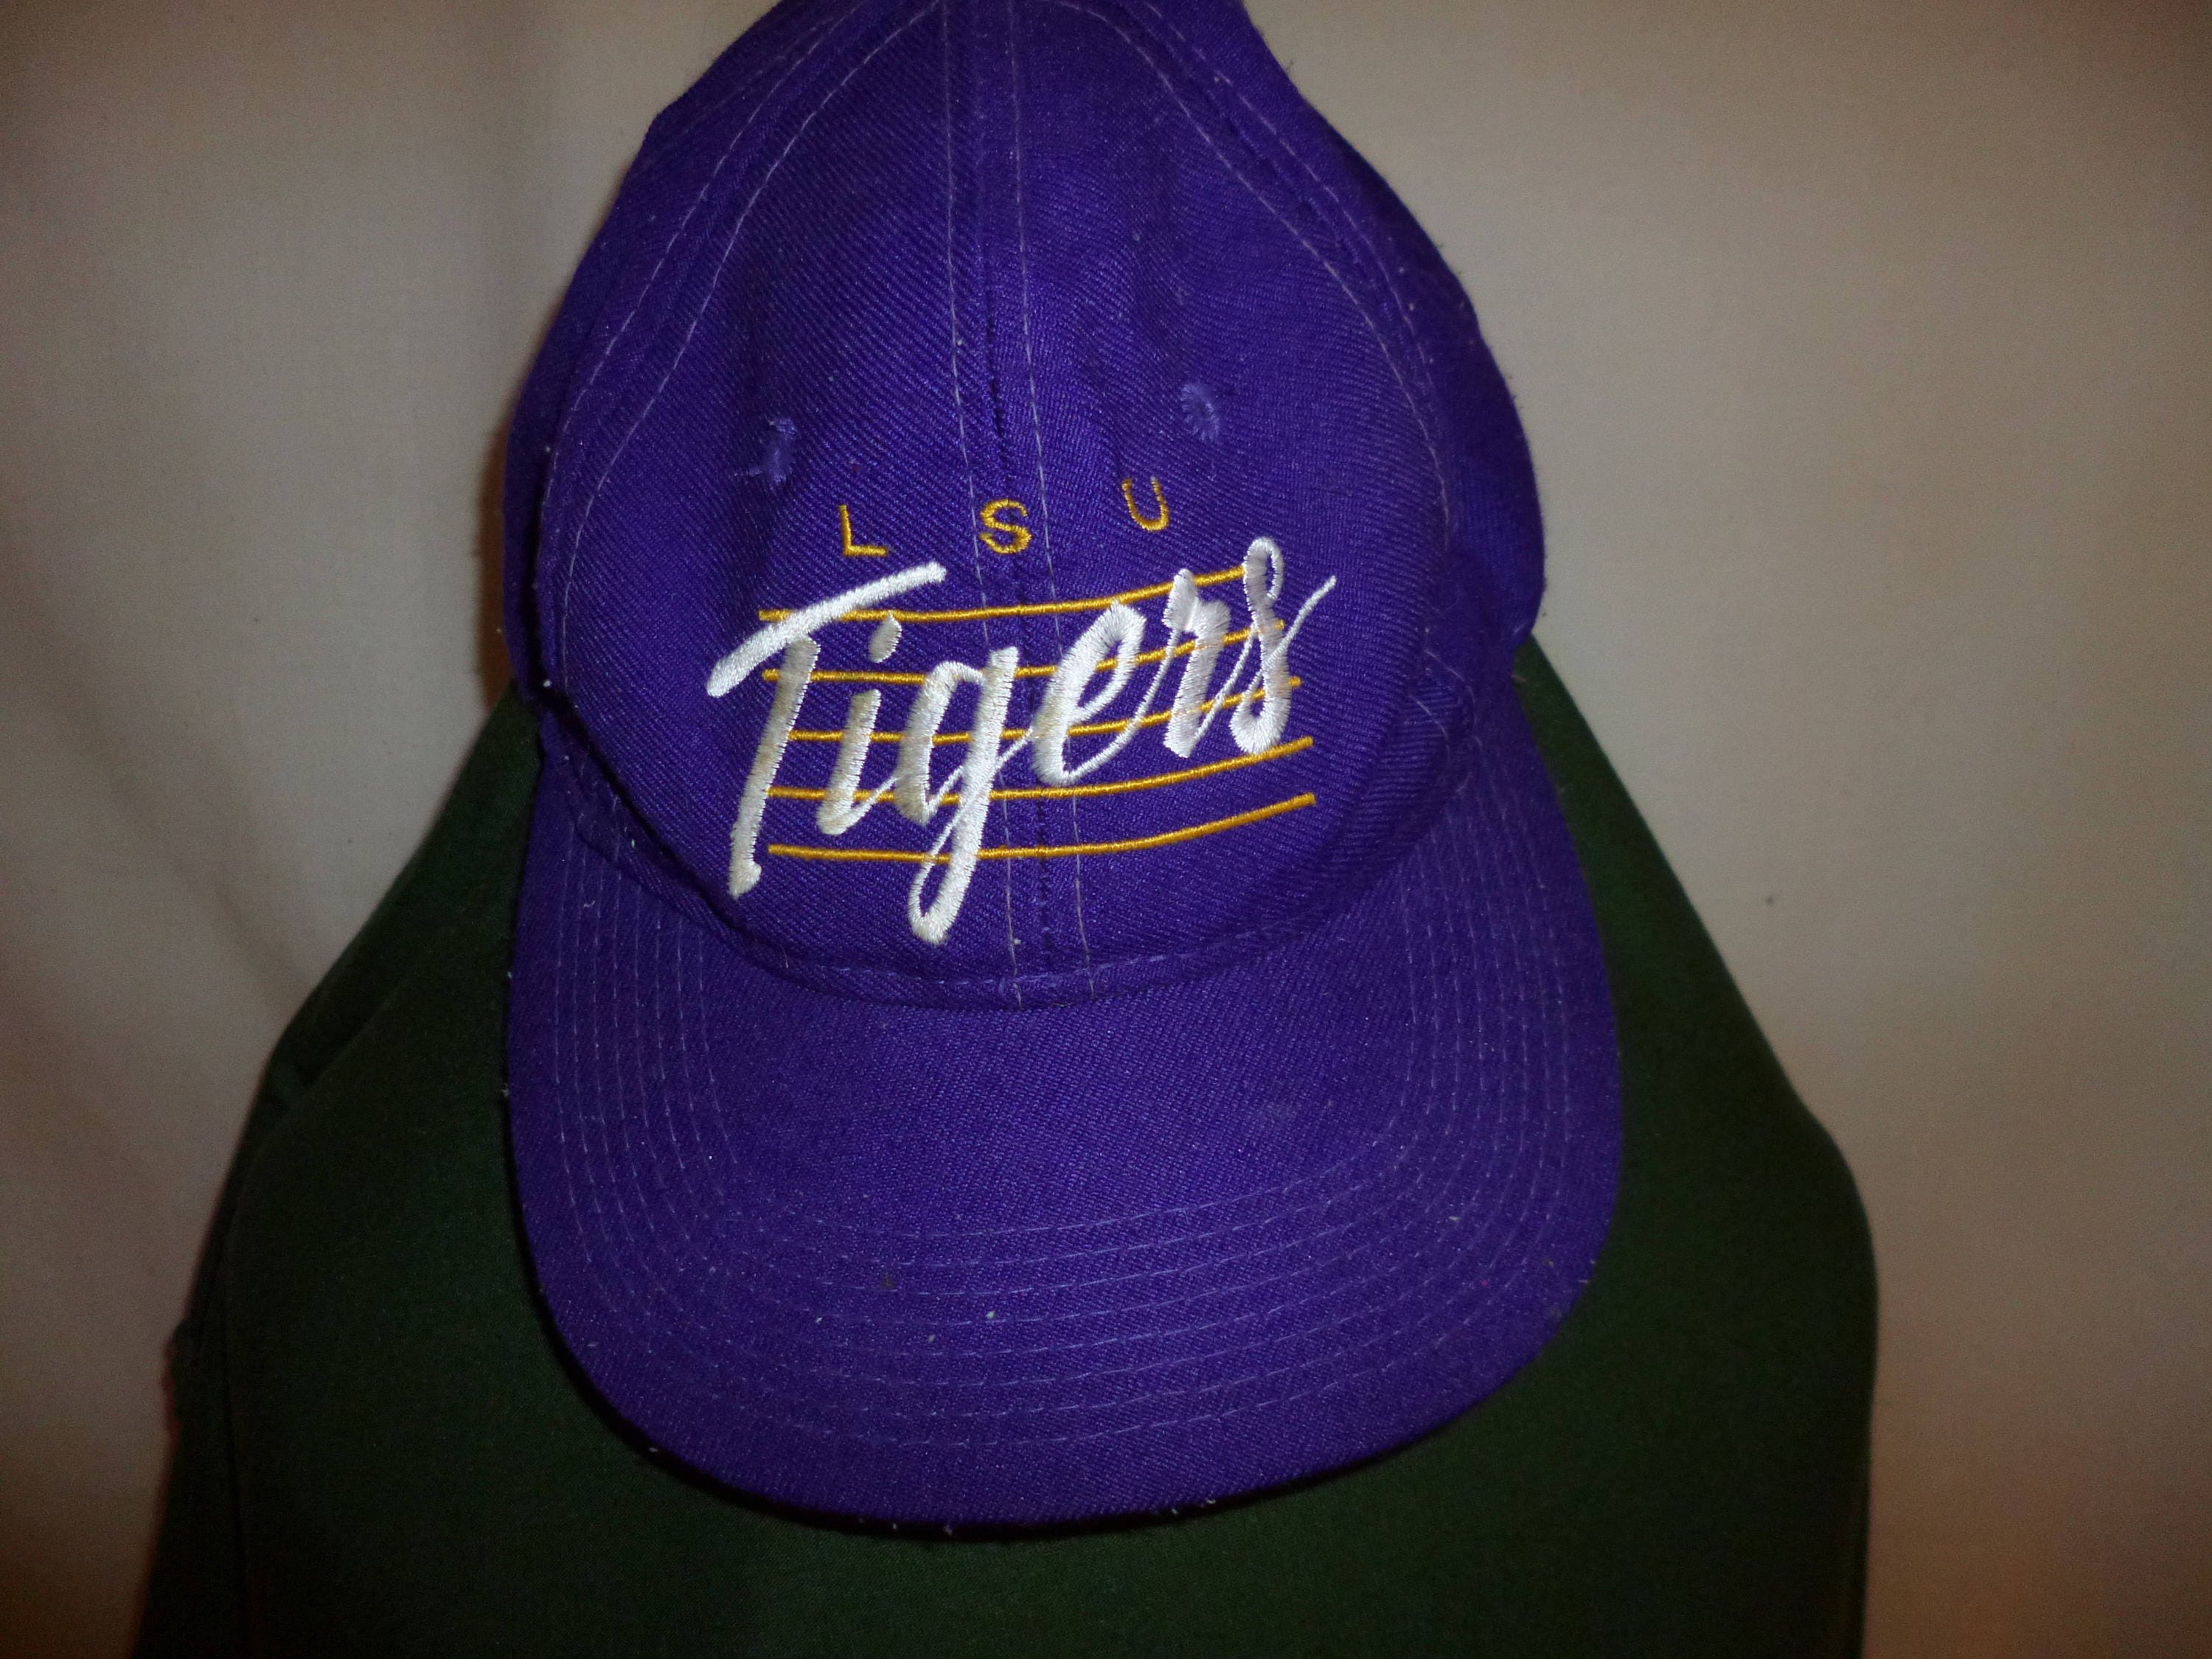 f292b1427dd6a ... authentic vintage lsu tigers snapback ballcap hat louisiana state  university free shipping a95a2 583c8